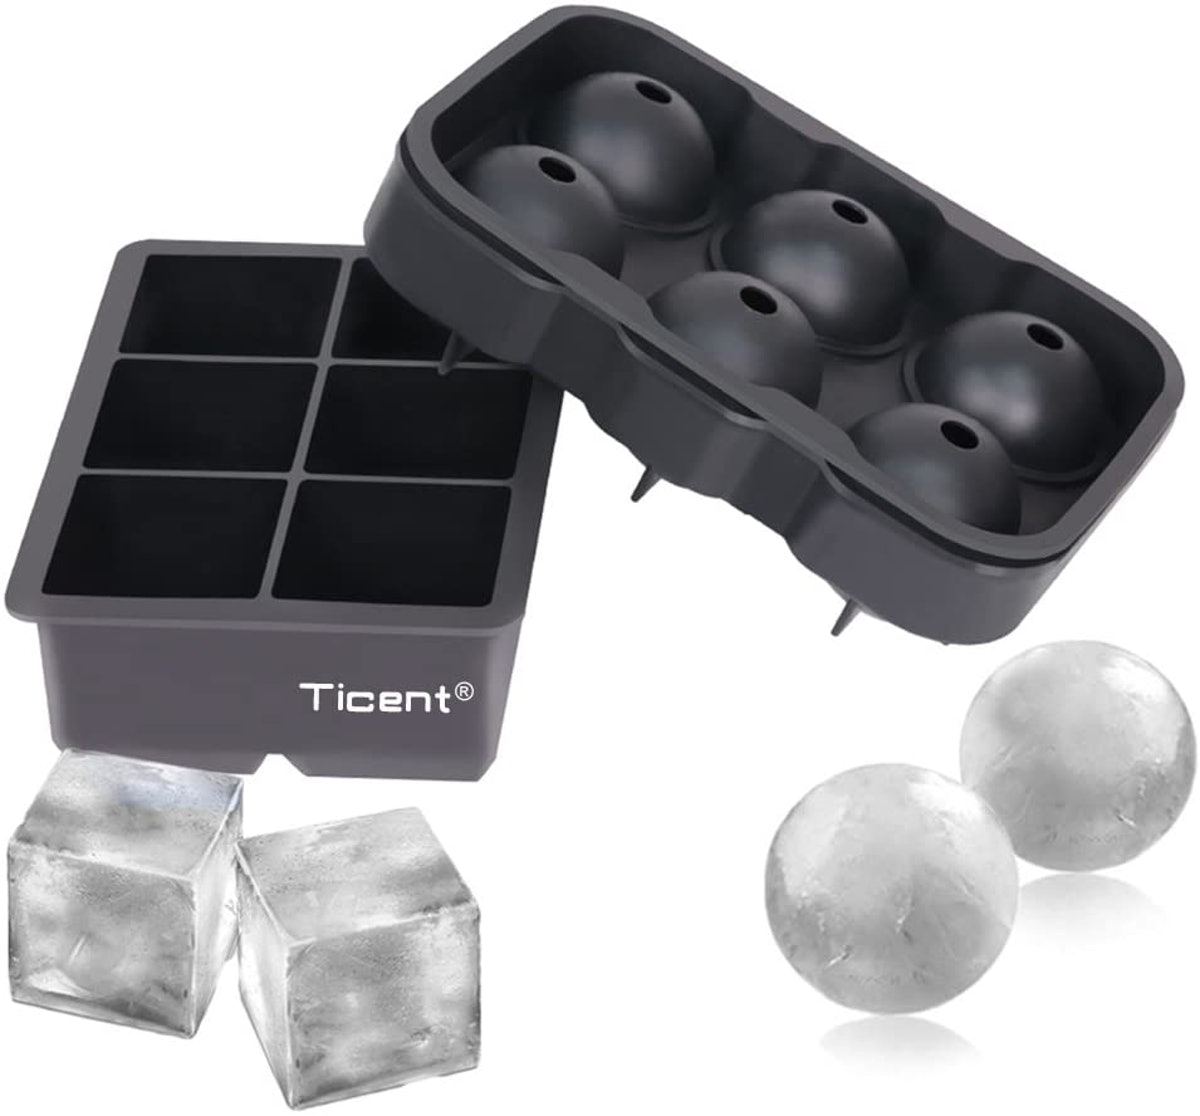 Ticent Ice Cube Trays (Set of 2)